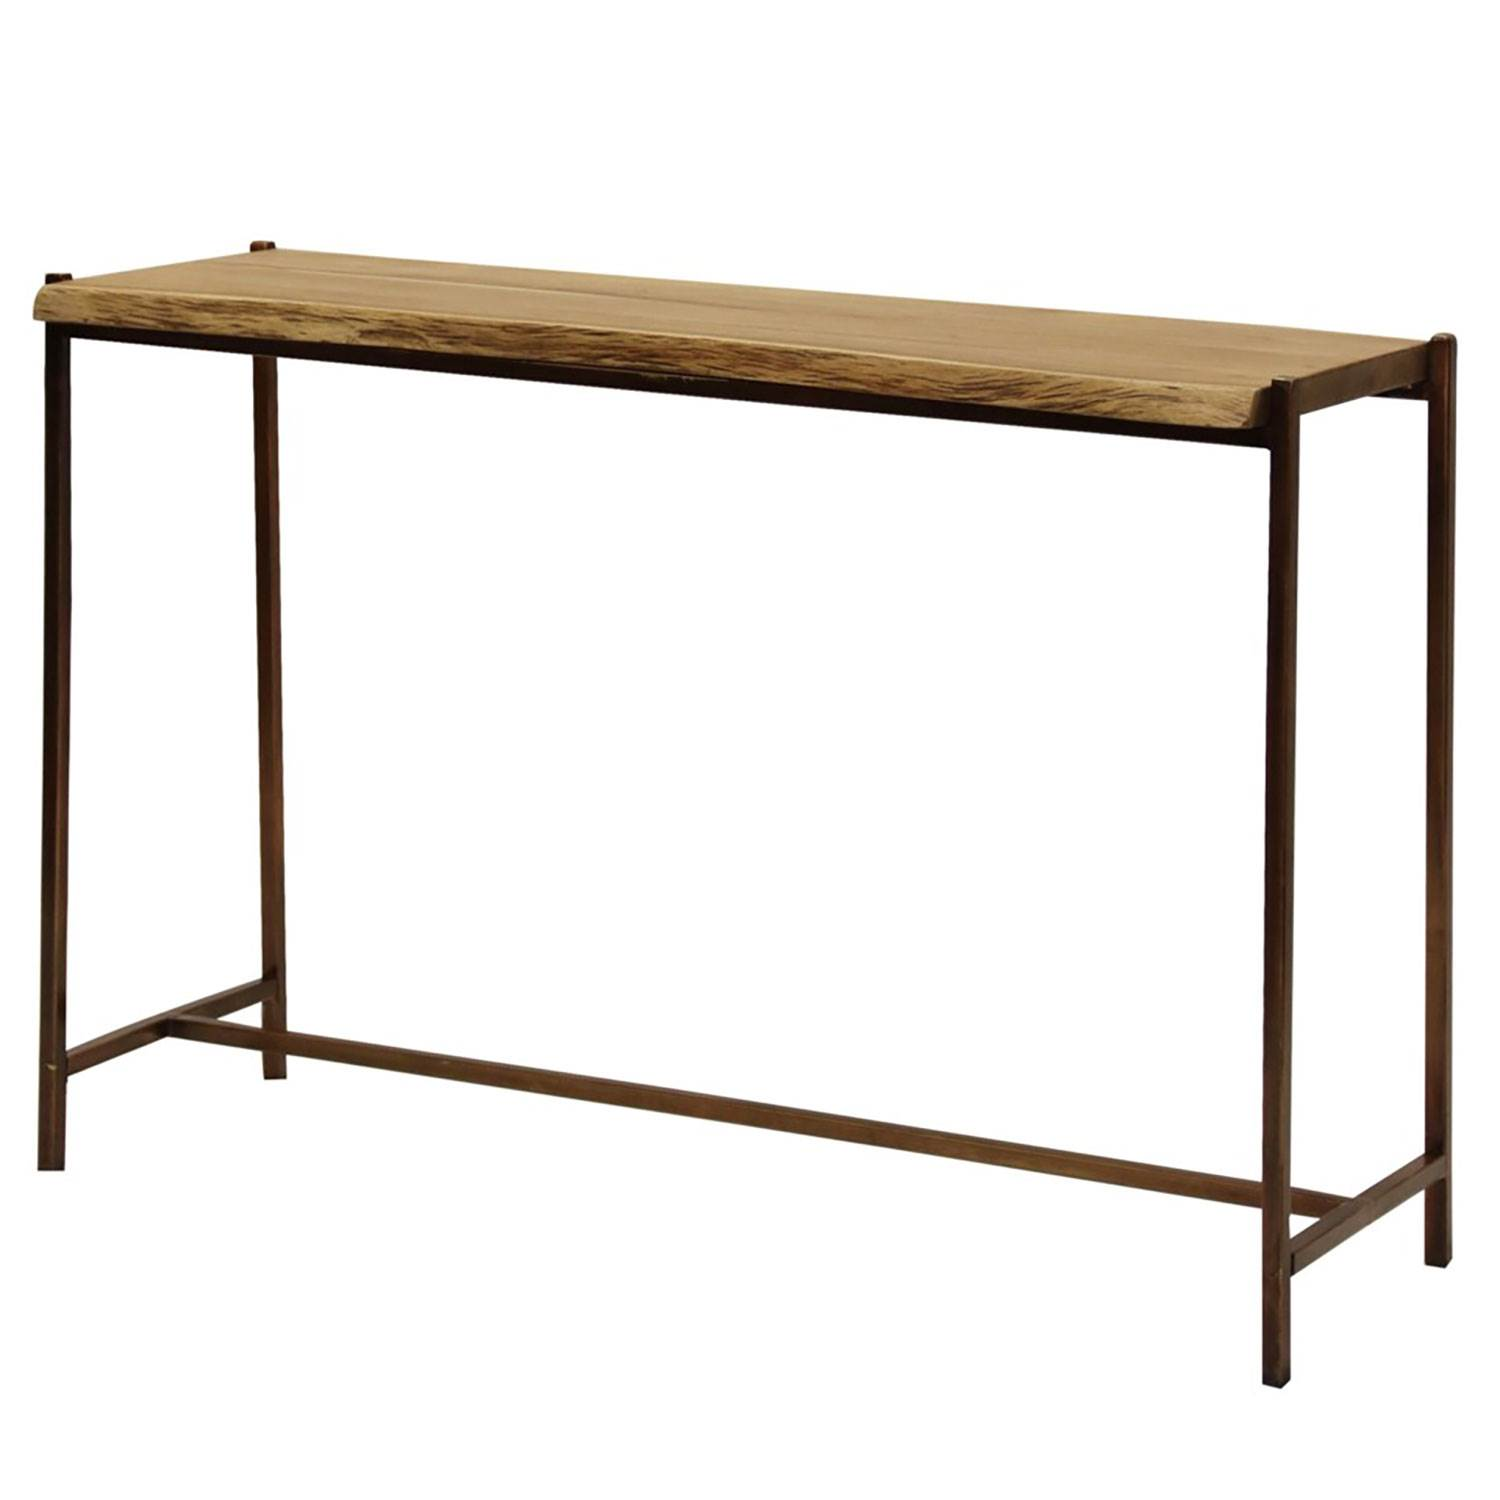 Picture of: Abode 84 Live Edge Solid Teak Wood Console Table In Natural Stain Finish Walmart Com Walmart Com